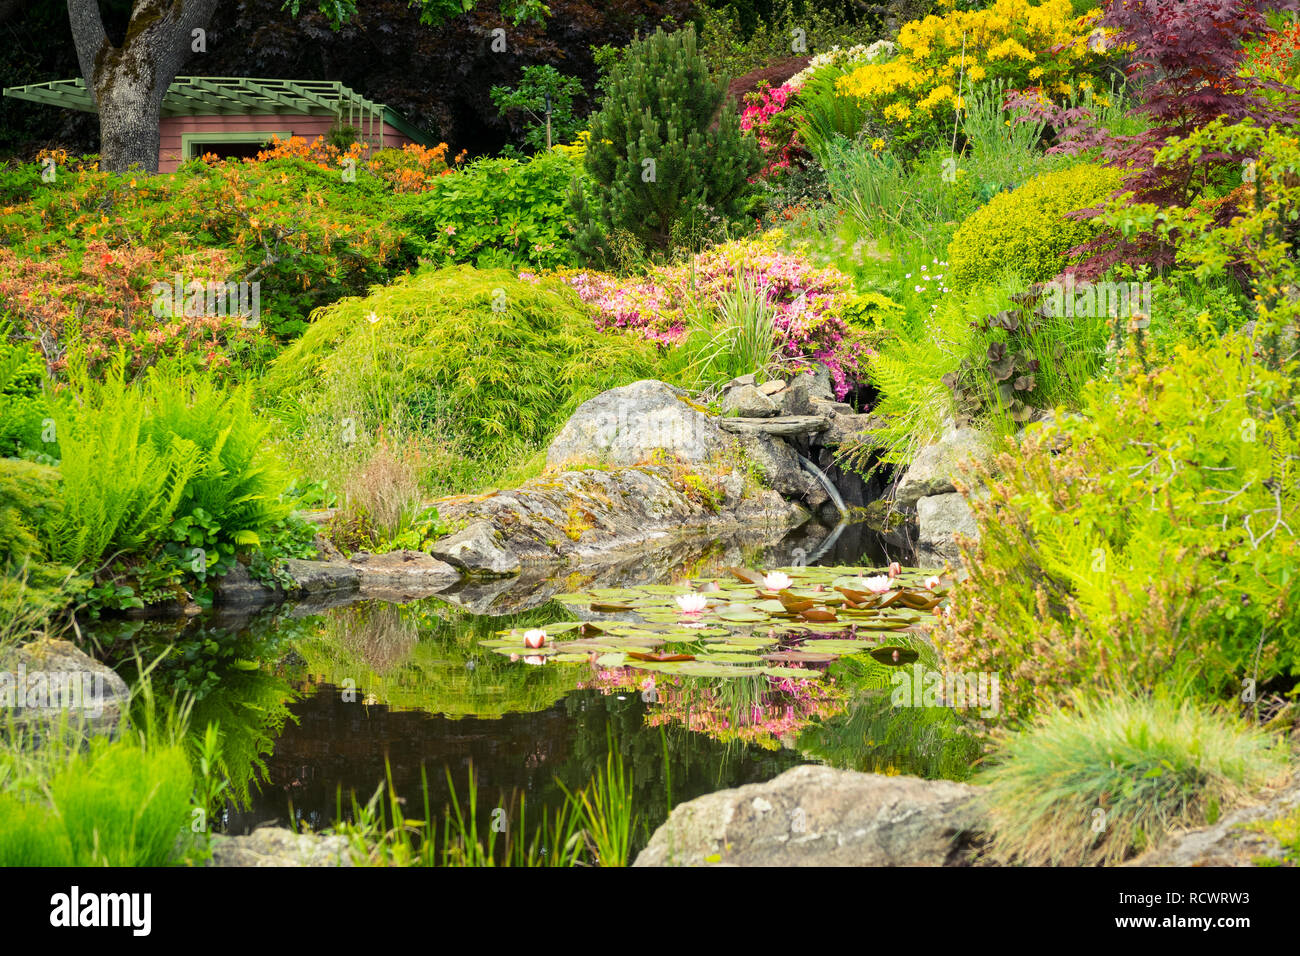 A view of the Summerhouse and lotus pond in the brilliant Abkhazi Garden (Abkhazi Gardens) during the spring in Victoria, British Columbia, Canada - Stock Image